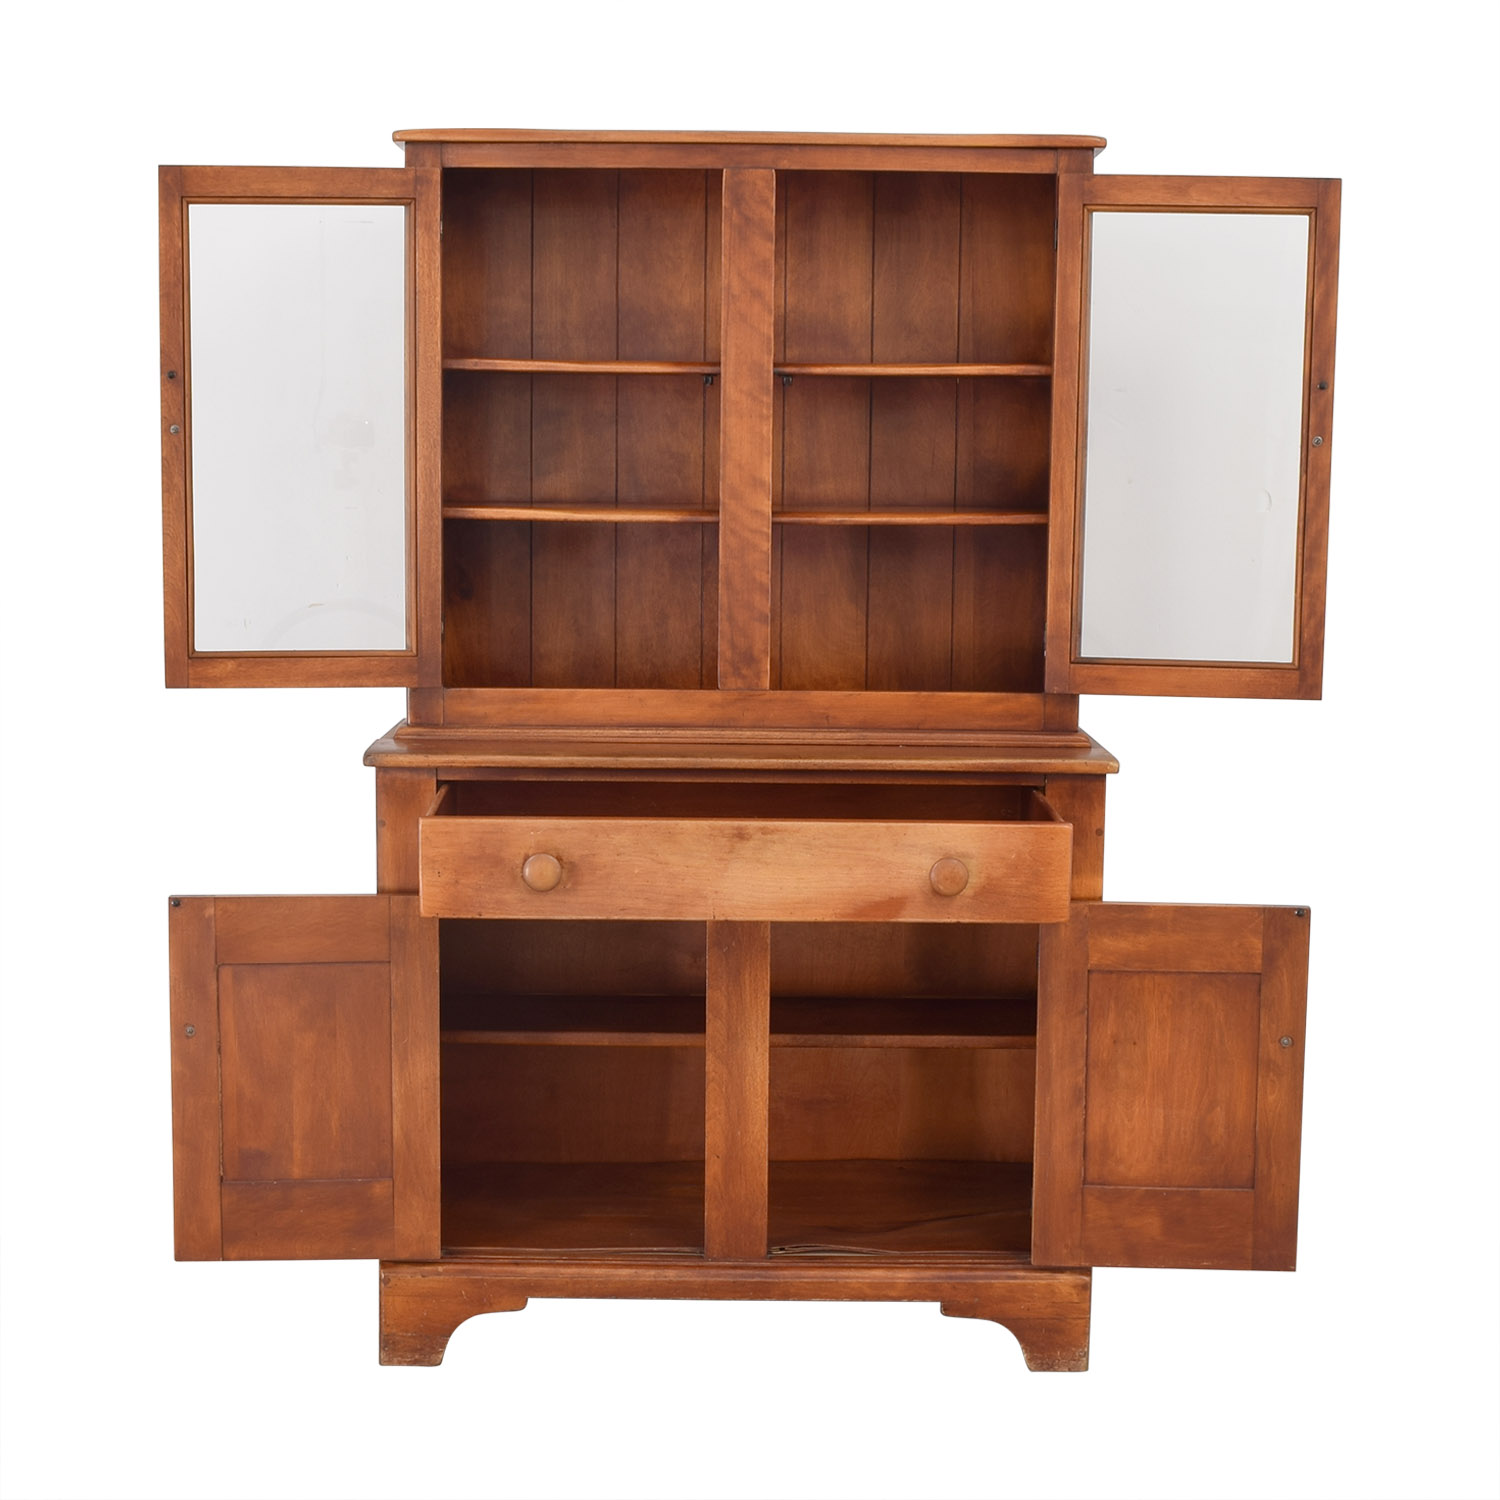 shop Cushman Colonial Cushman Colonial China Cabinet with Hutch online